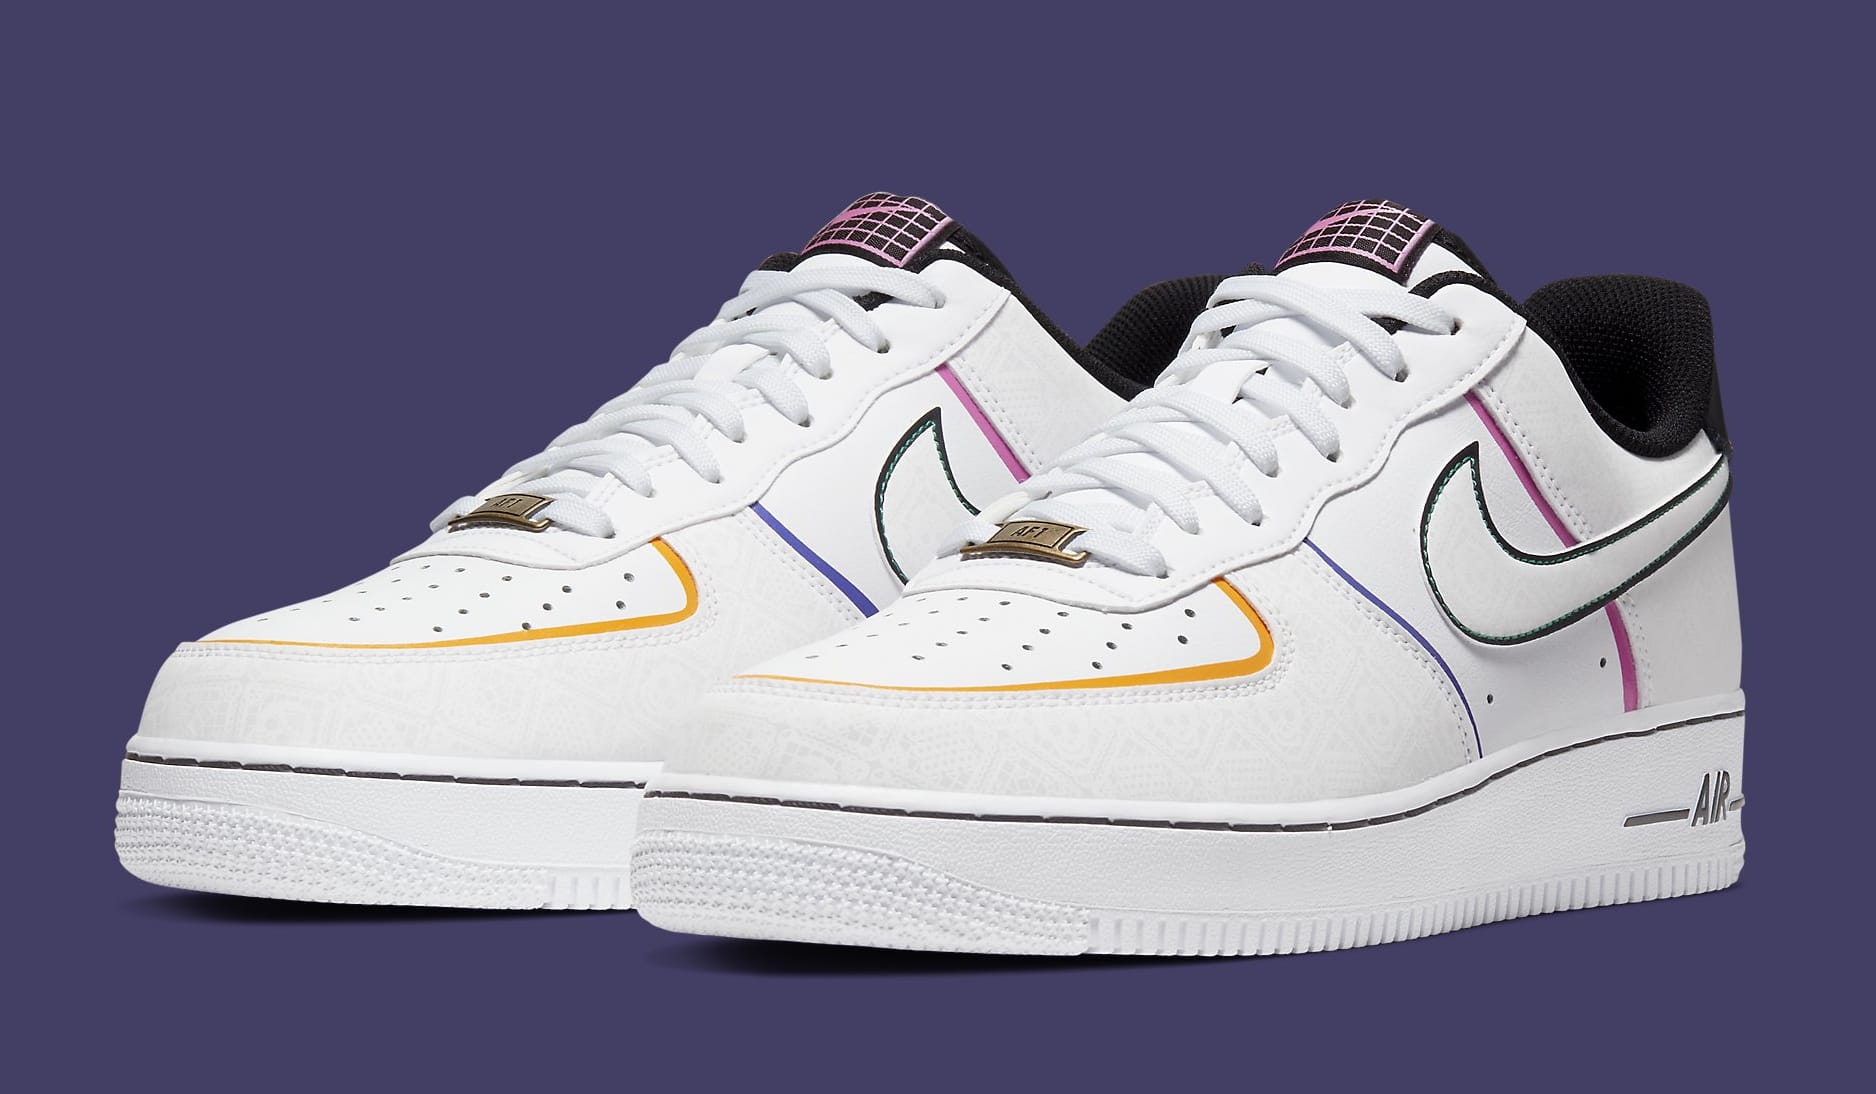 nike-air-force-1-low-dia-de-los-muertos-ct1138-100-pair